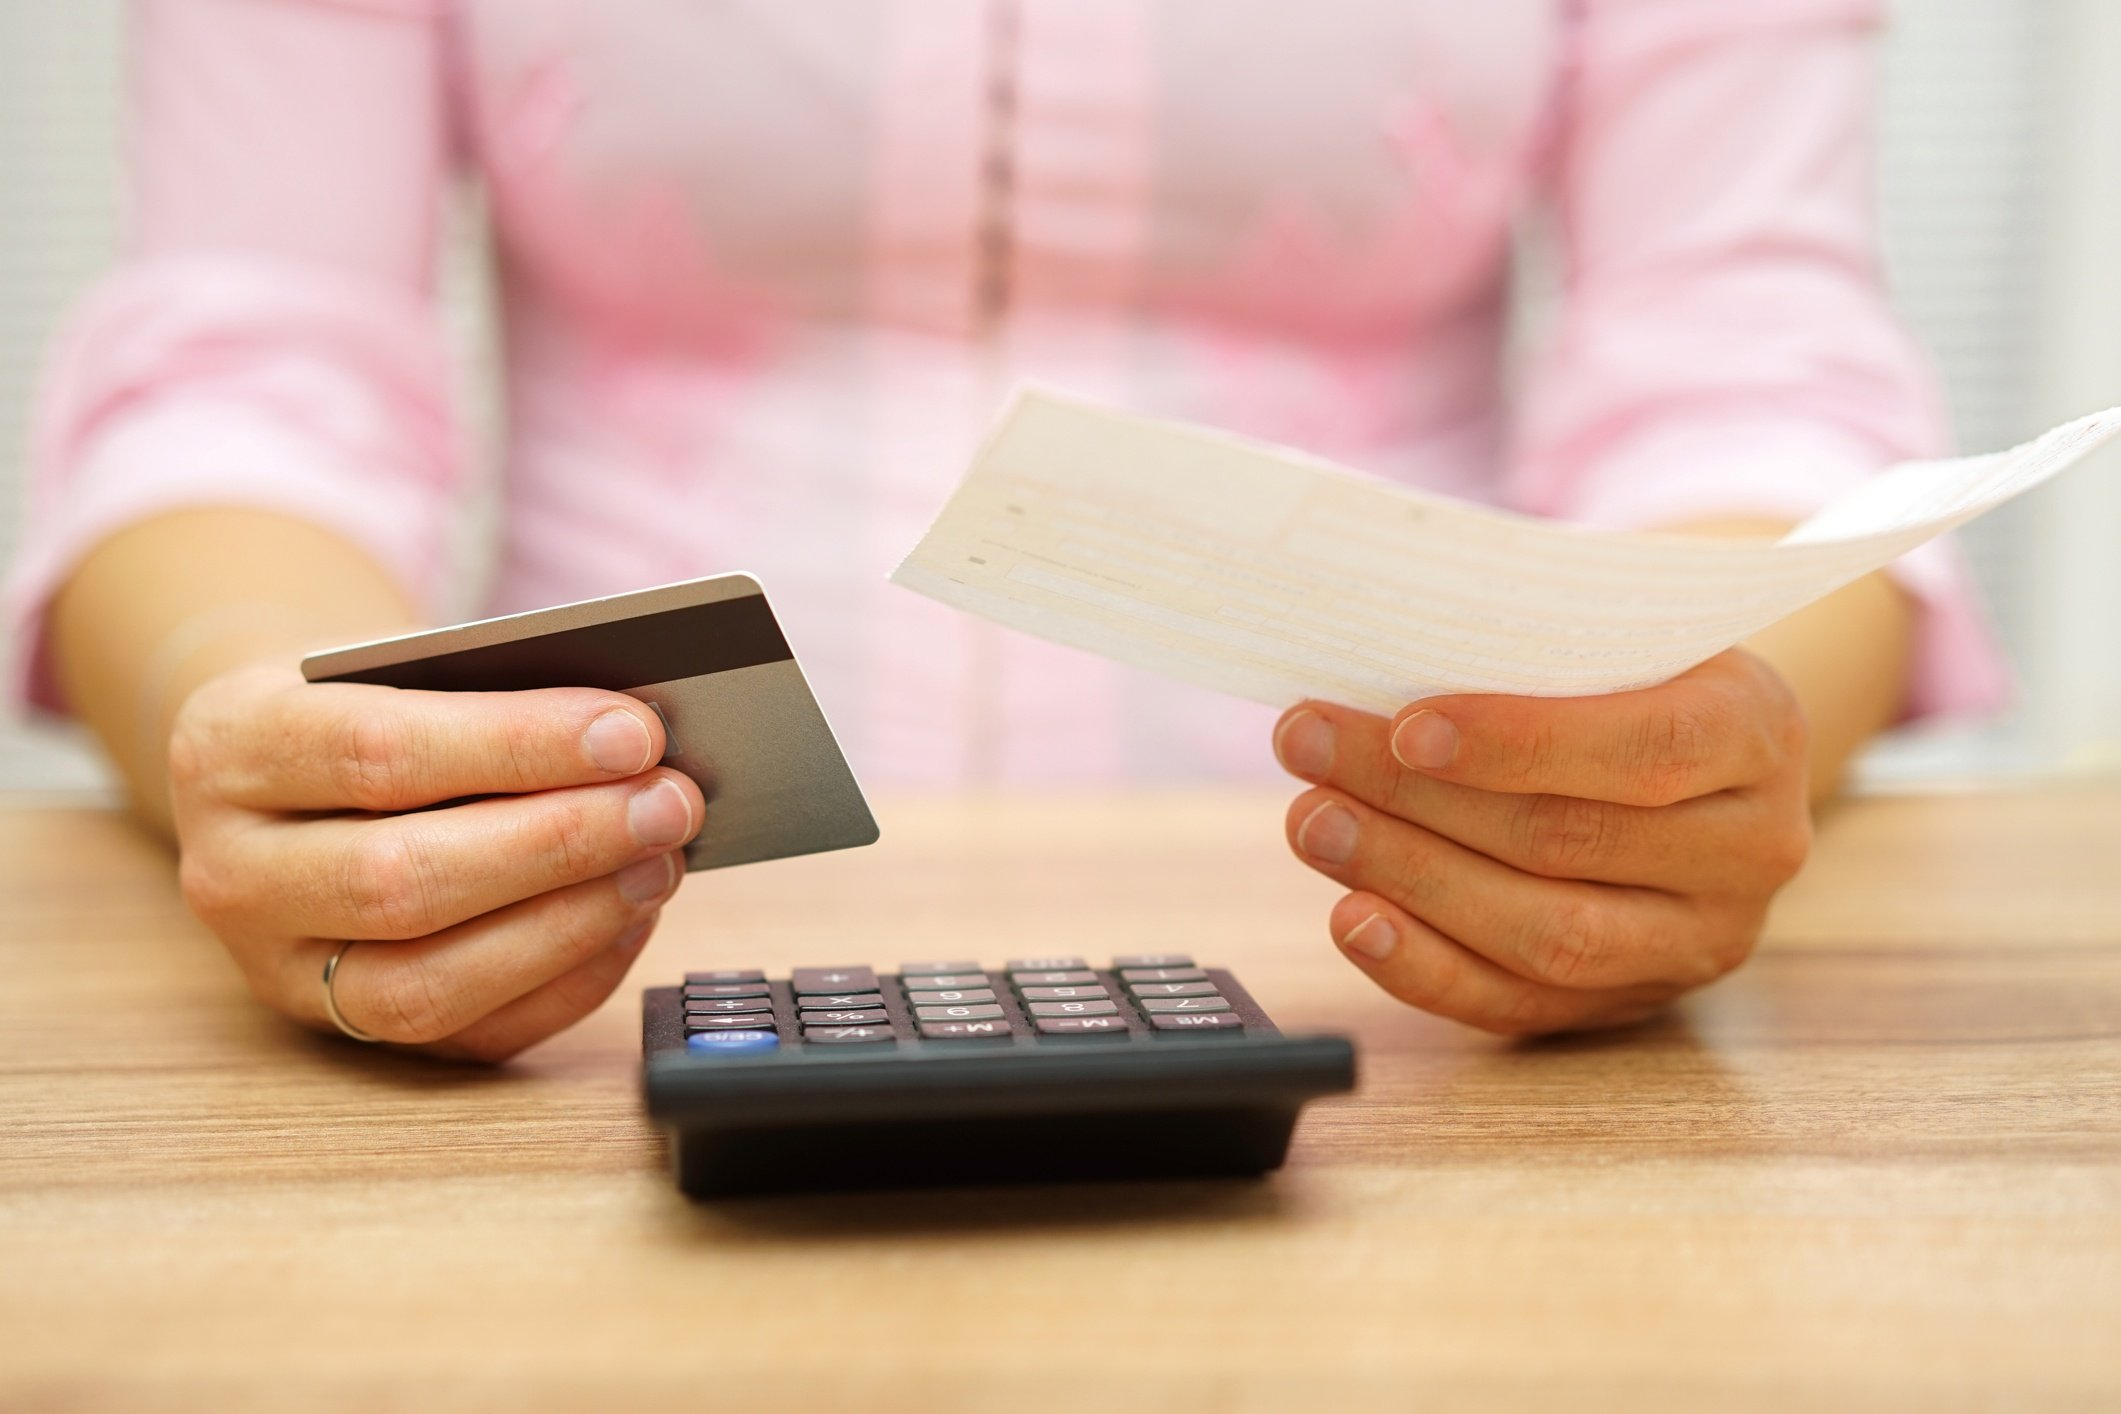 woman holding credit card and piece of paper looking at calculator